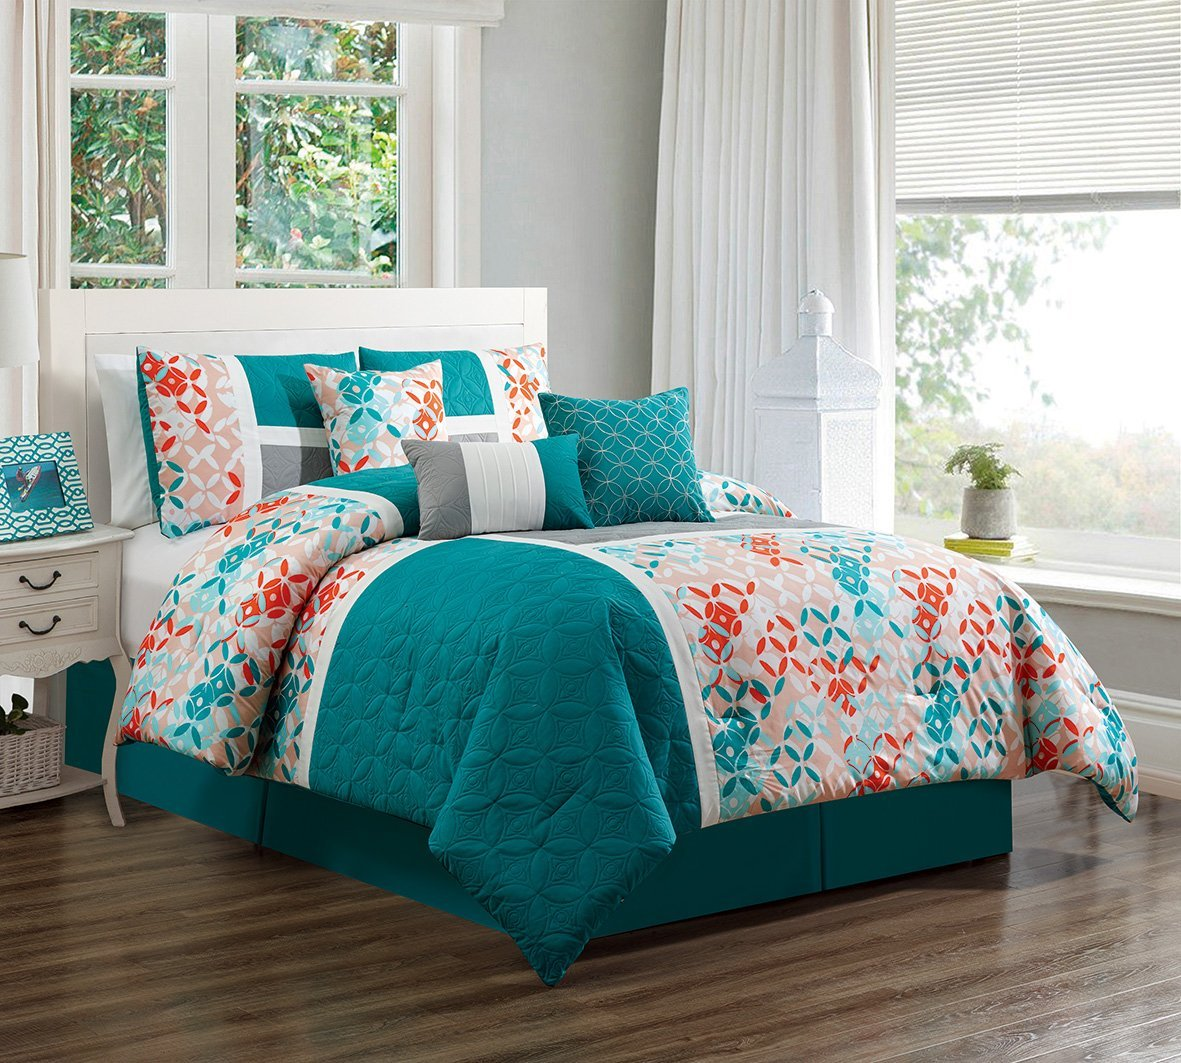 Buy 7 Piece Turquoise Blue Orange Grey Patchwork Bed In A Bag Microfiber Comforter Set California Cal King Size Bedding Perfect For Any Bed Room Or Guest Room In Cheap Price On Alibaba Com